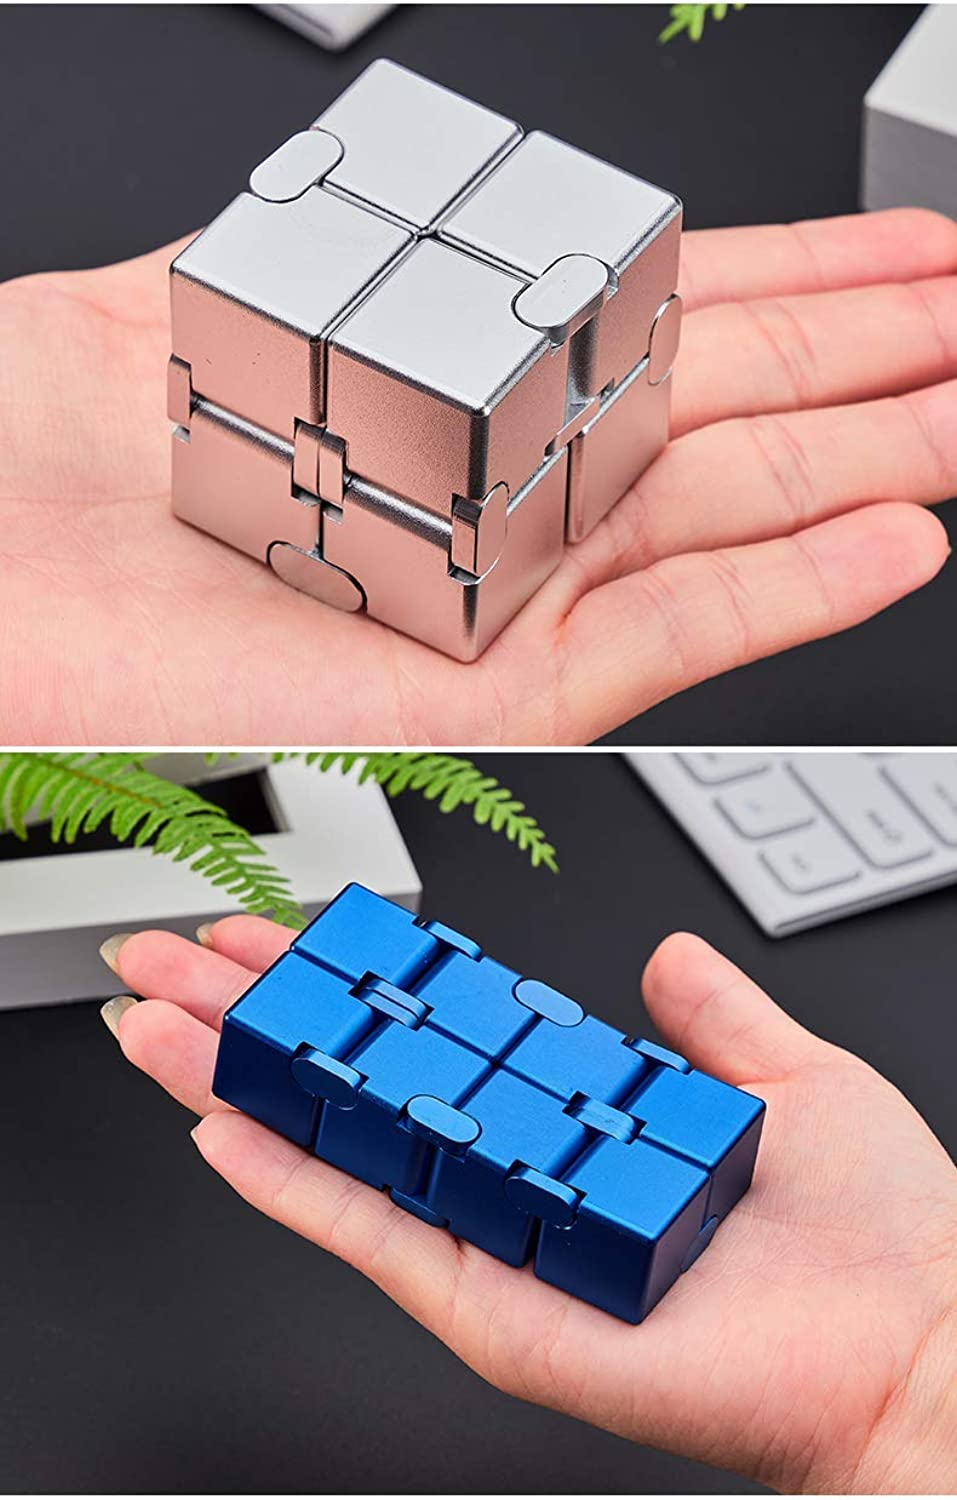 Zhouye Rubik's Cube class boring pass time Oracle Unzip toy decompression alloy antianxiety block vent roll